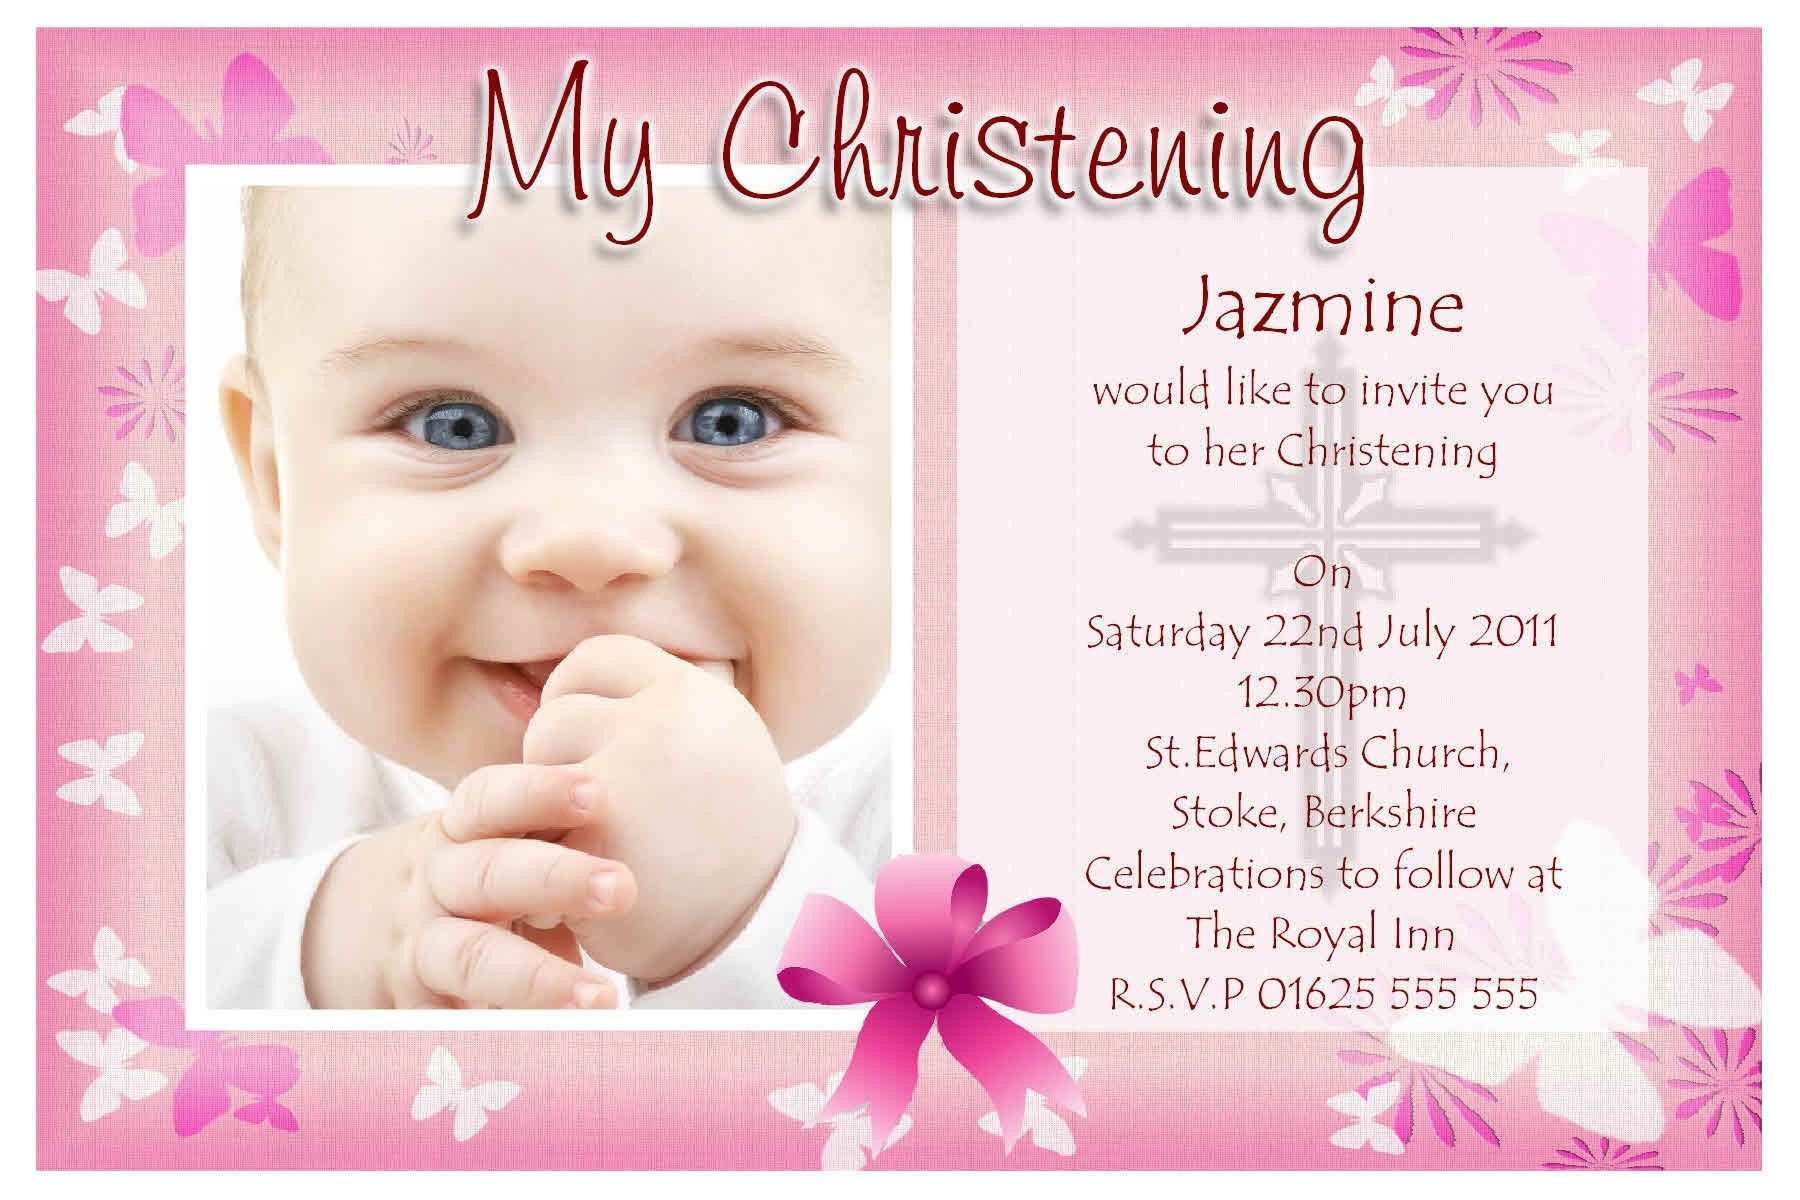 Baby Christening Invitation Templates | Stuff to Buy | Pinterest ...